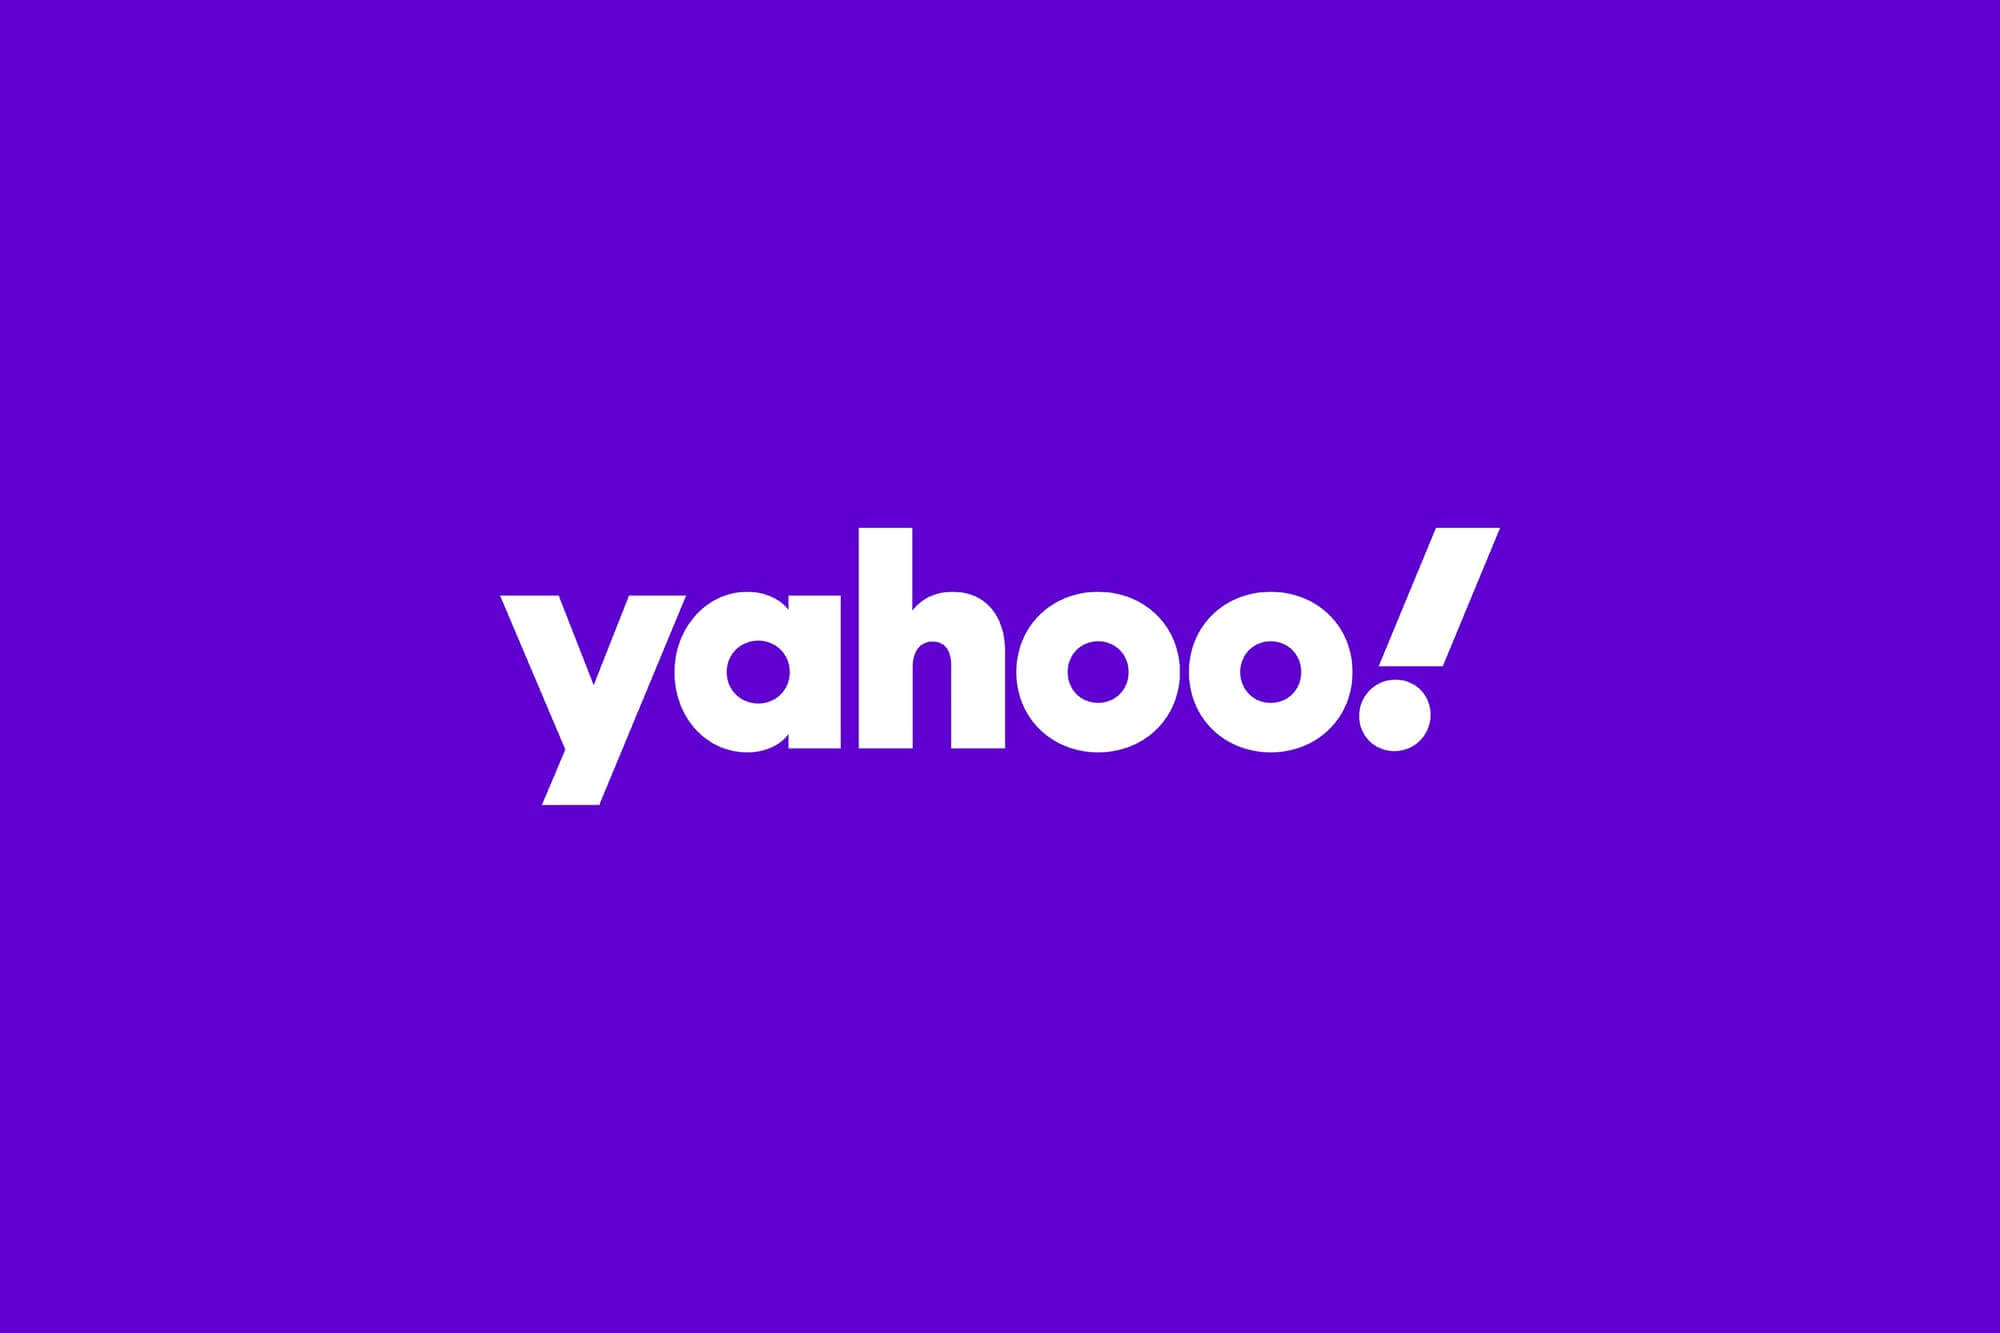 Yahoo updates logo for the second time in 25 years